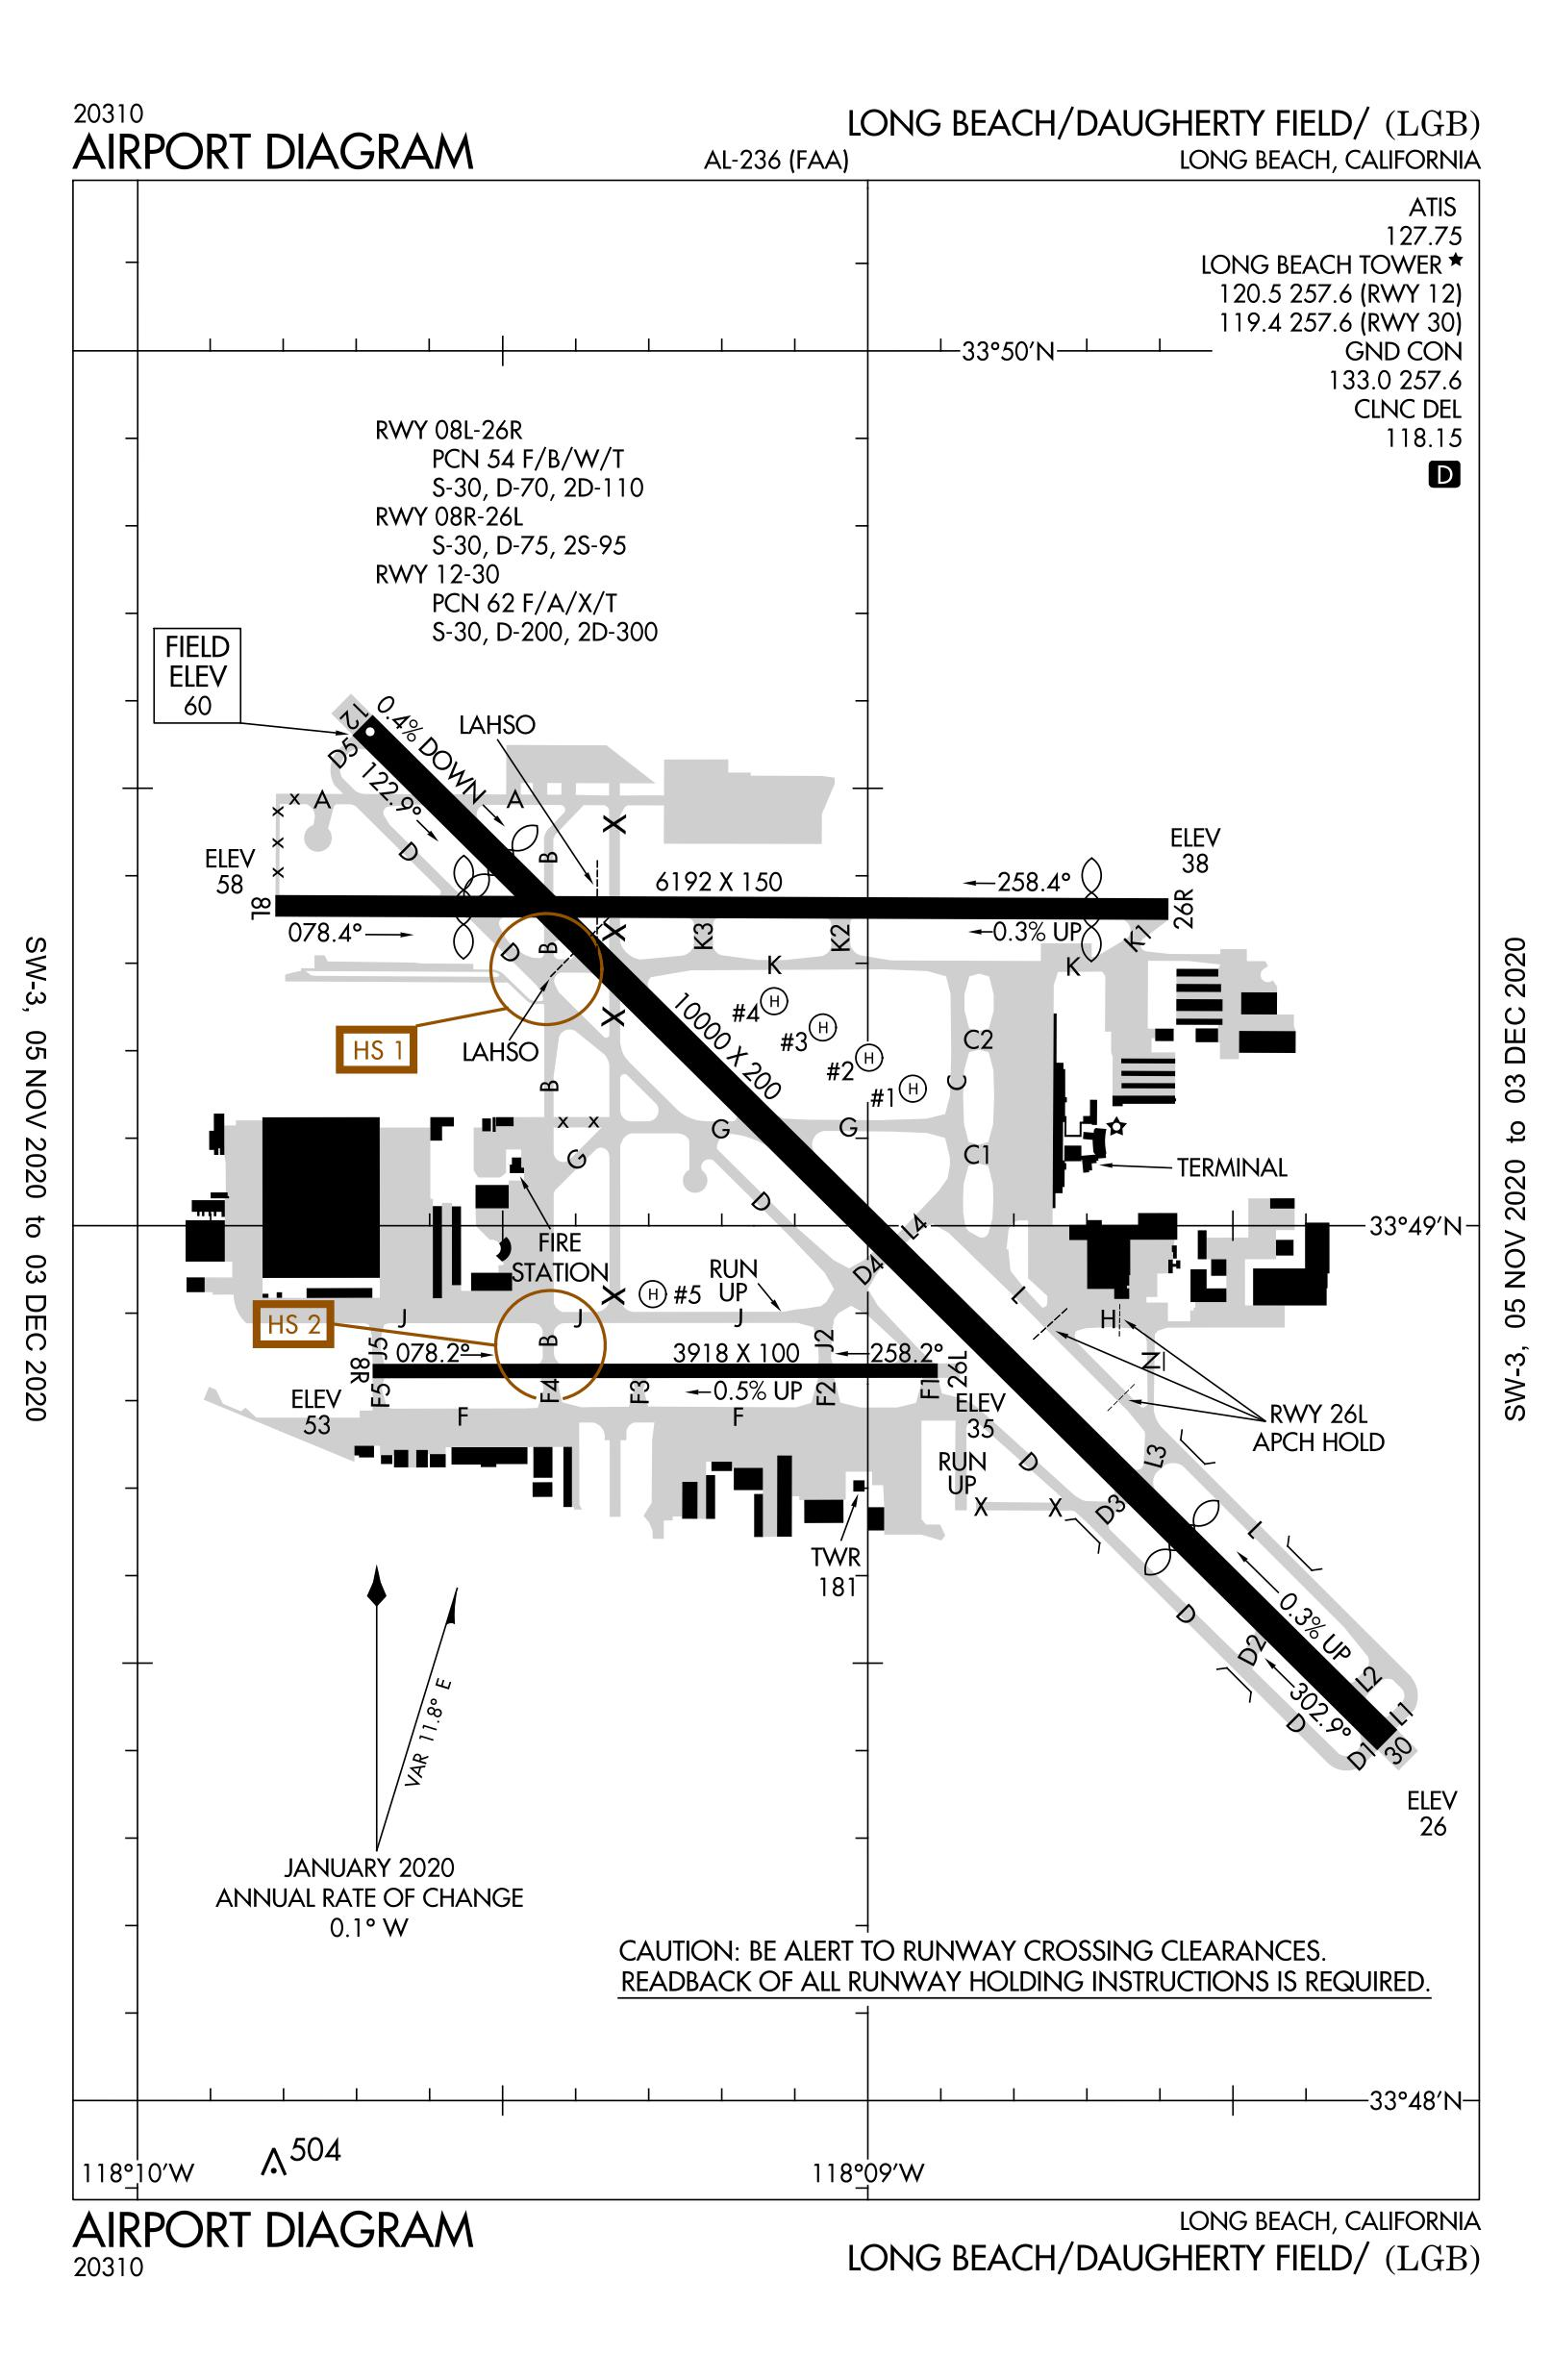 Long Beach Airport Diagram Nov. 5 2020 thru Dec. 3 2020